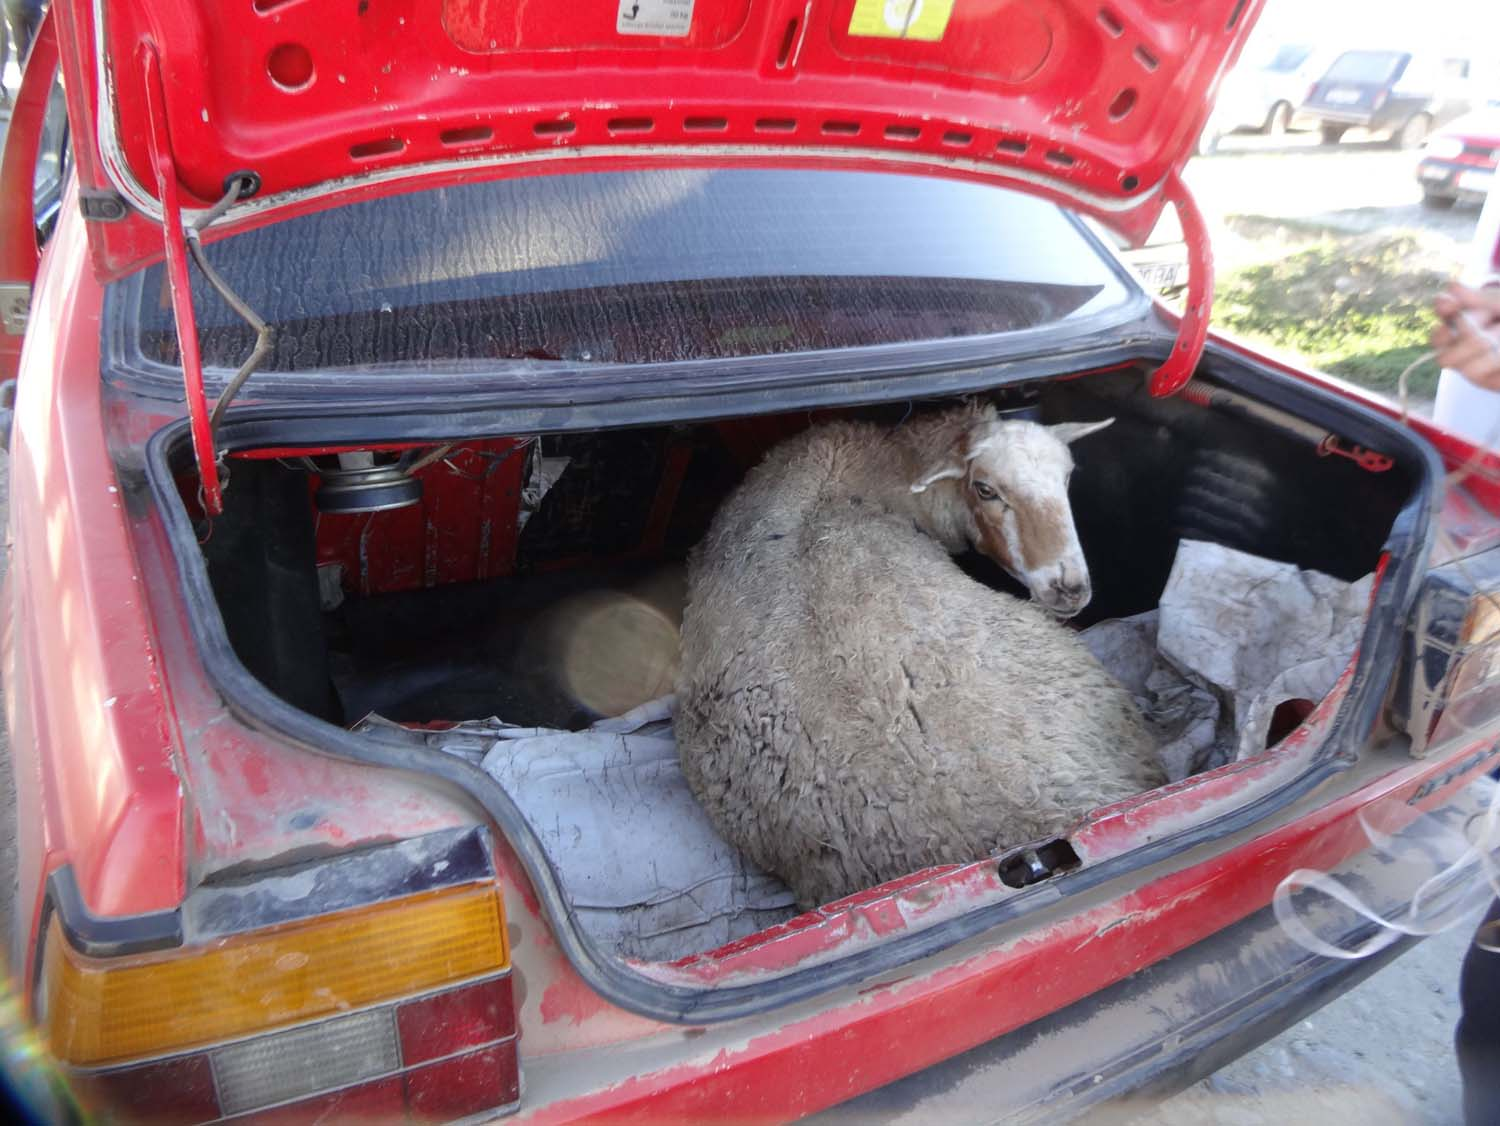 sheep in boot - of course